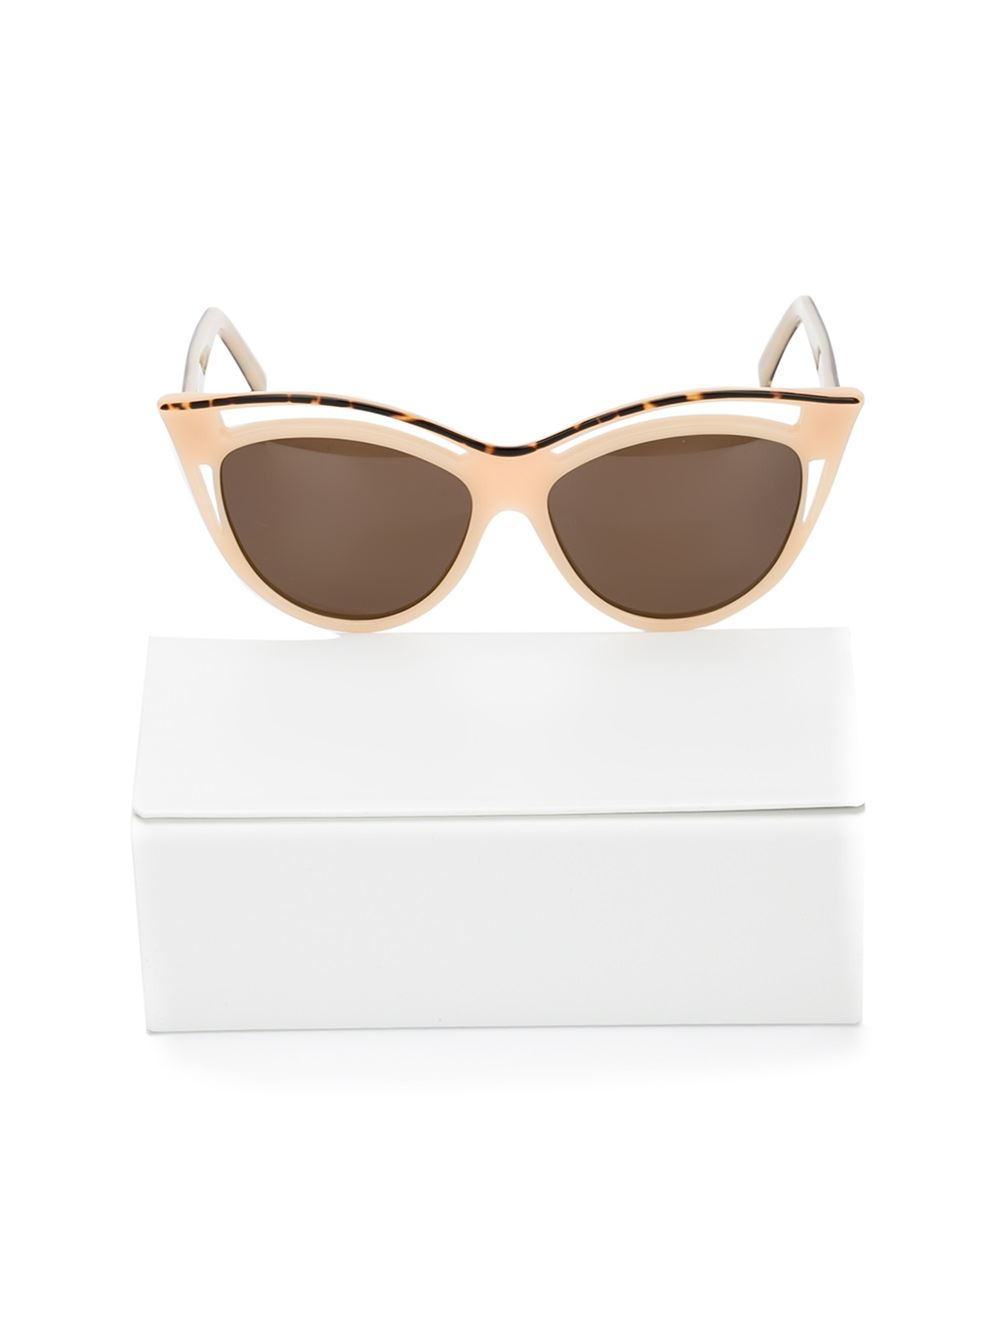 Andy Wolf Cat Eye Sunglasses In Beige Nude Amp Neutrals Lyst